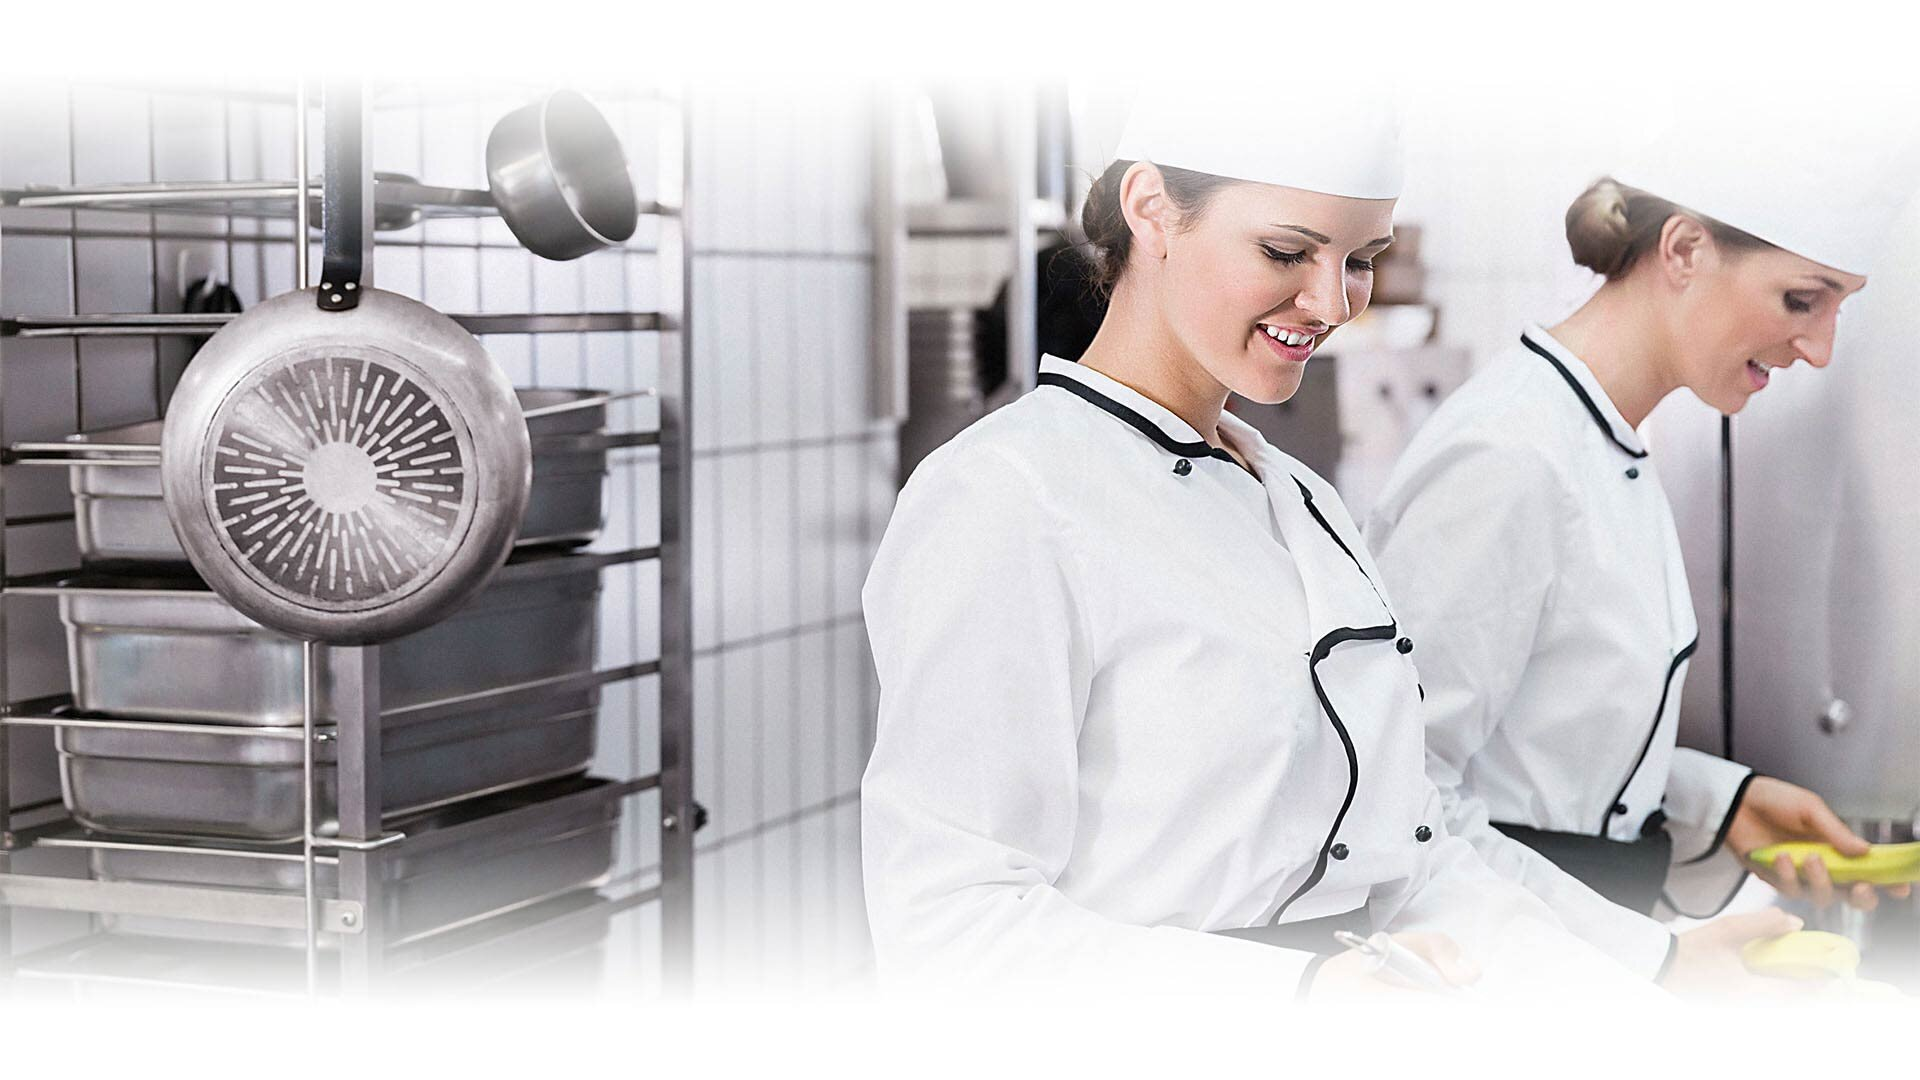 Commercial dishwashers for hotels - MEIKO